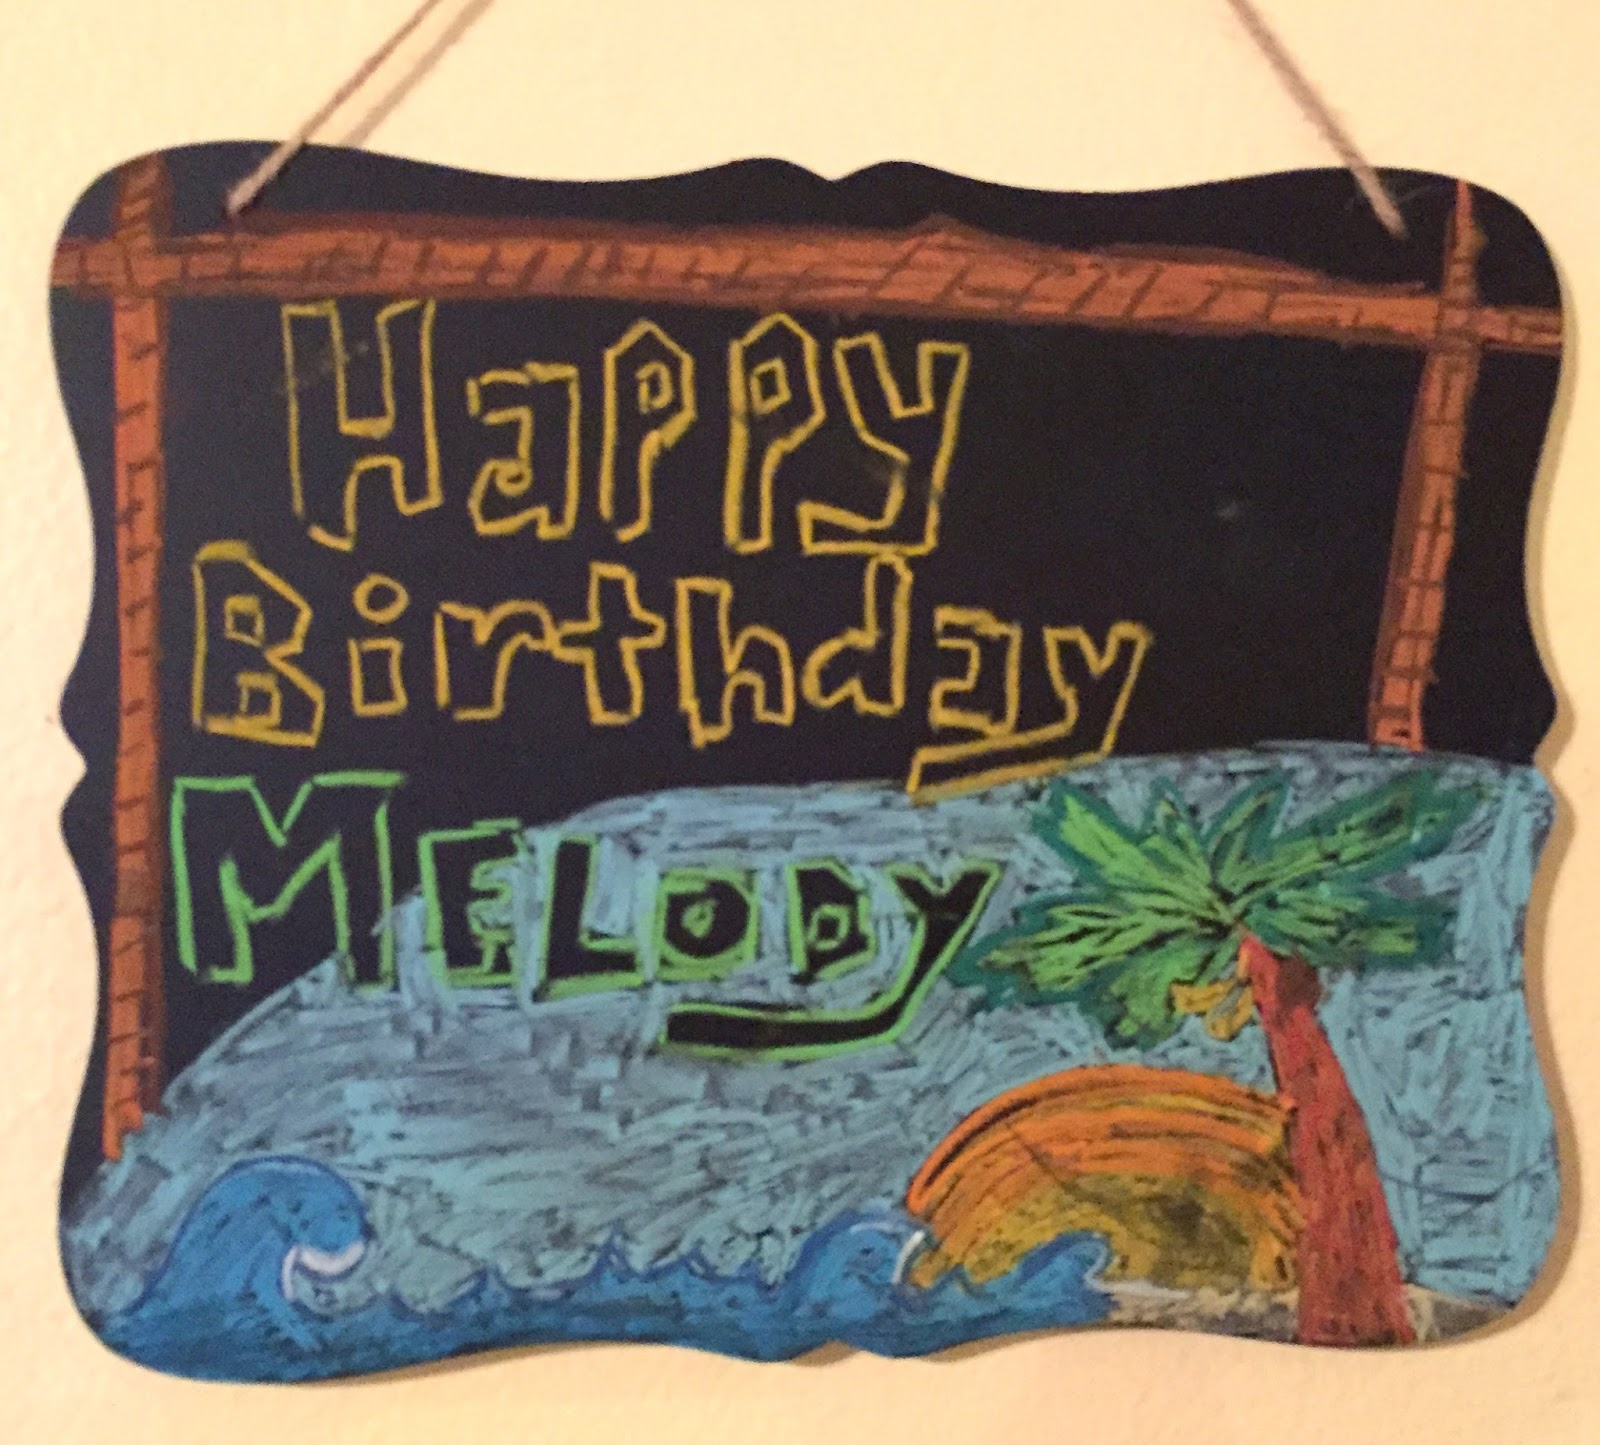 Chalk Boards Are So Versatile For Making Impromptu Colorful Signs My 14 Year Old Daughter Naomi Drew The Chalkboard Designs And Birthday Banner